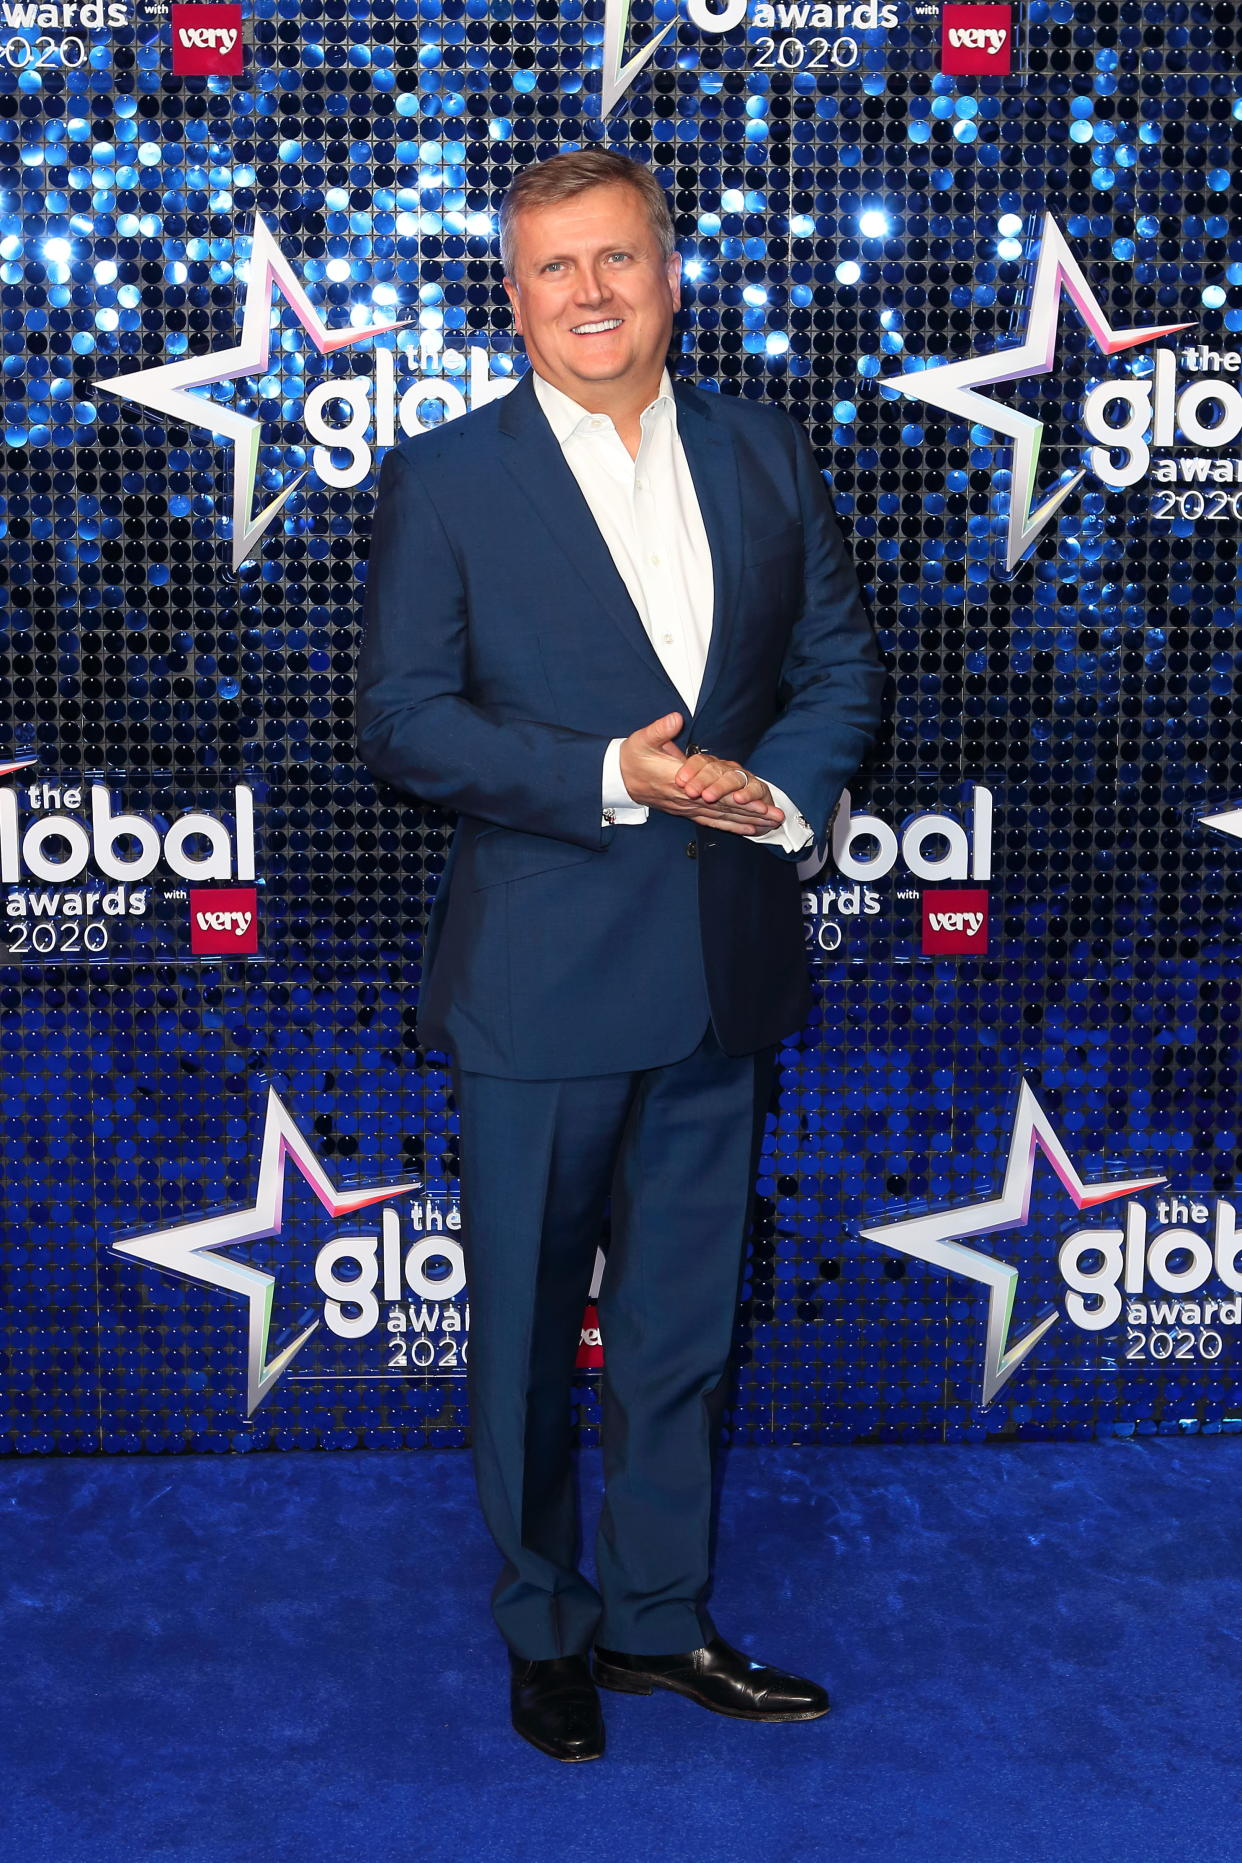 LONDON, UNITED KINGDOM - March 5, 2020 -  Aled Jones arrives at the Global Awards 2020, Hammersmith Apollo, London UK- PHOTOGRAPH BY Jamy / Barcroft Studios / Future Publishing (Photo credit should read Jamy/Barcroft Media via Getty Images)